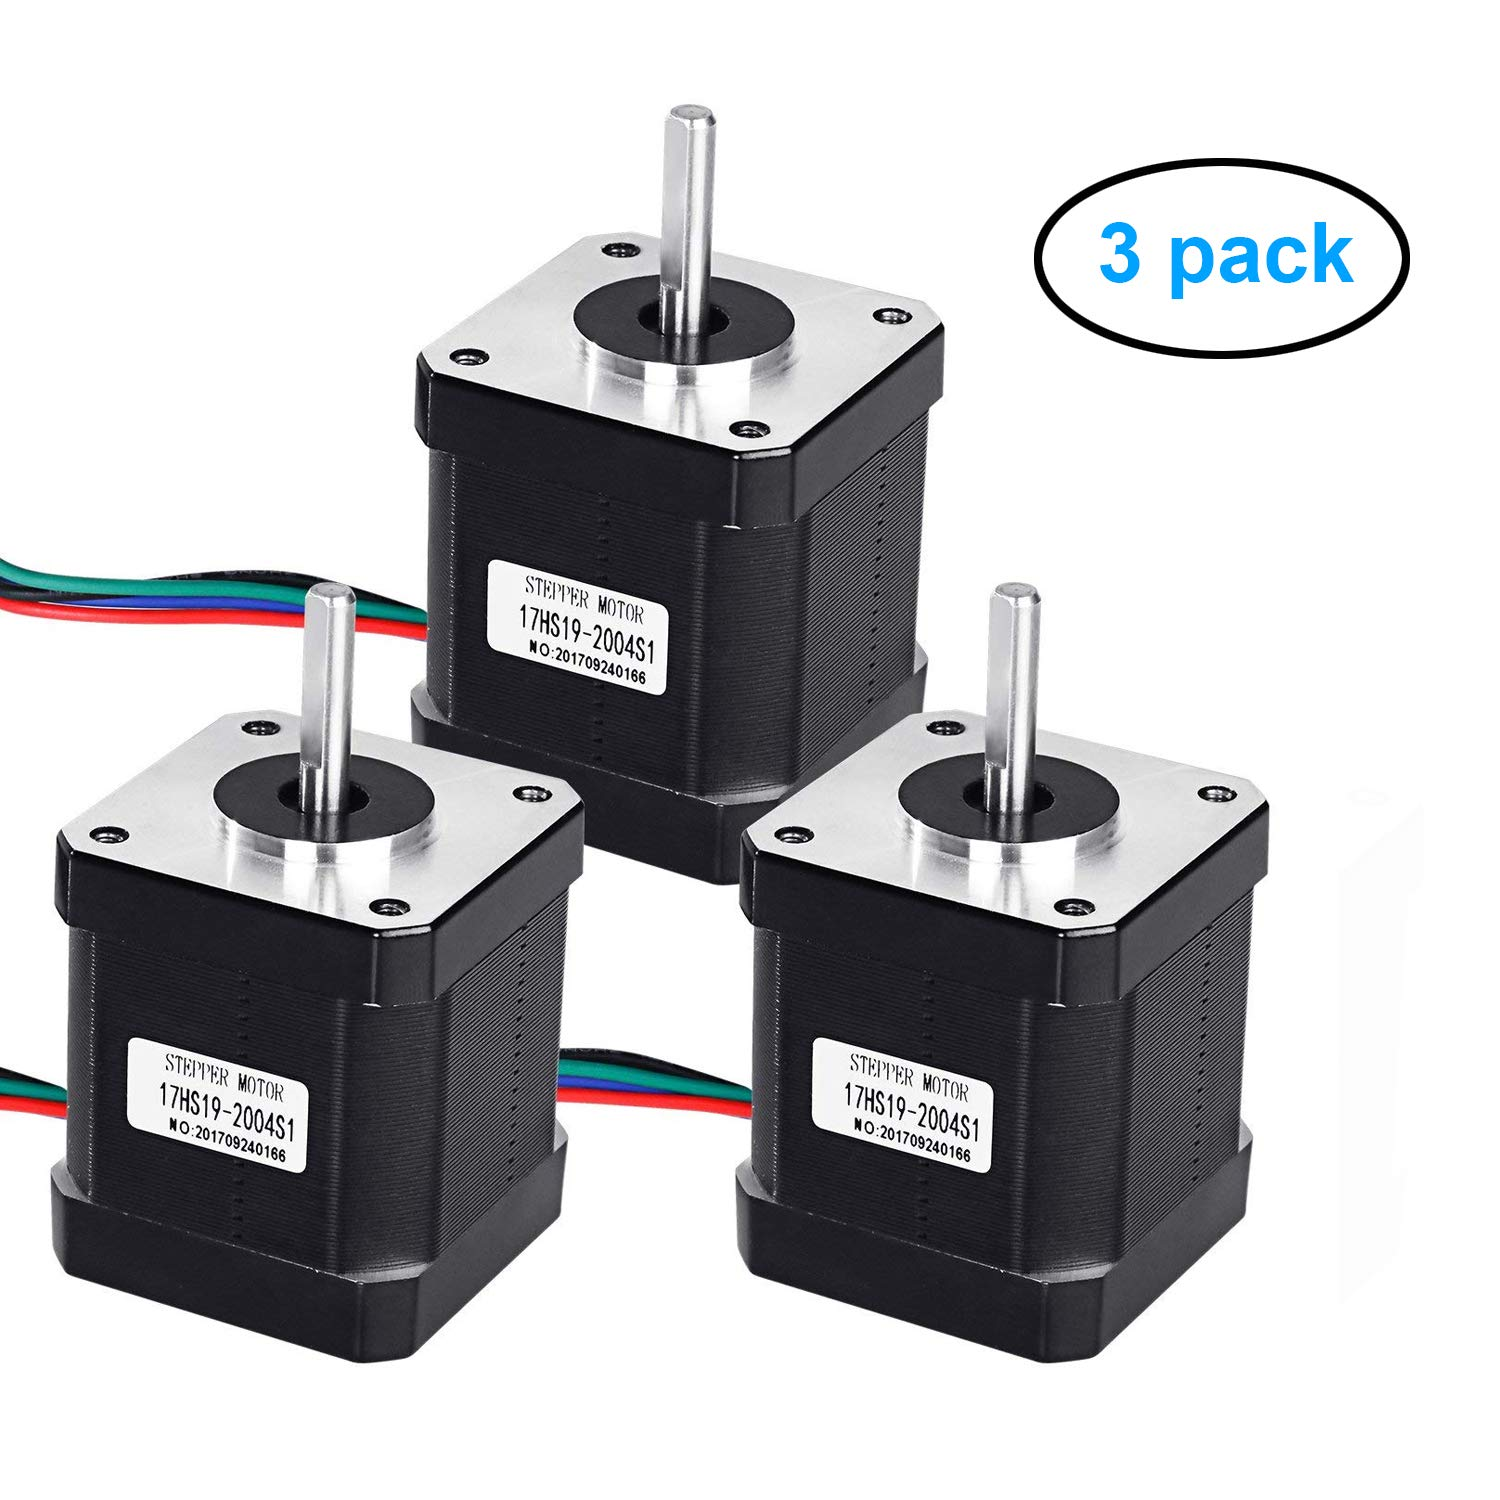 3 Pack Nema 17 Stepper Motor, craftsman168 2A 59Ncm(83.6oz.in) 48mm Body 42 Motor with 1m 4-lead Cable & Connector for 3D Printer/CNC Machine